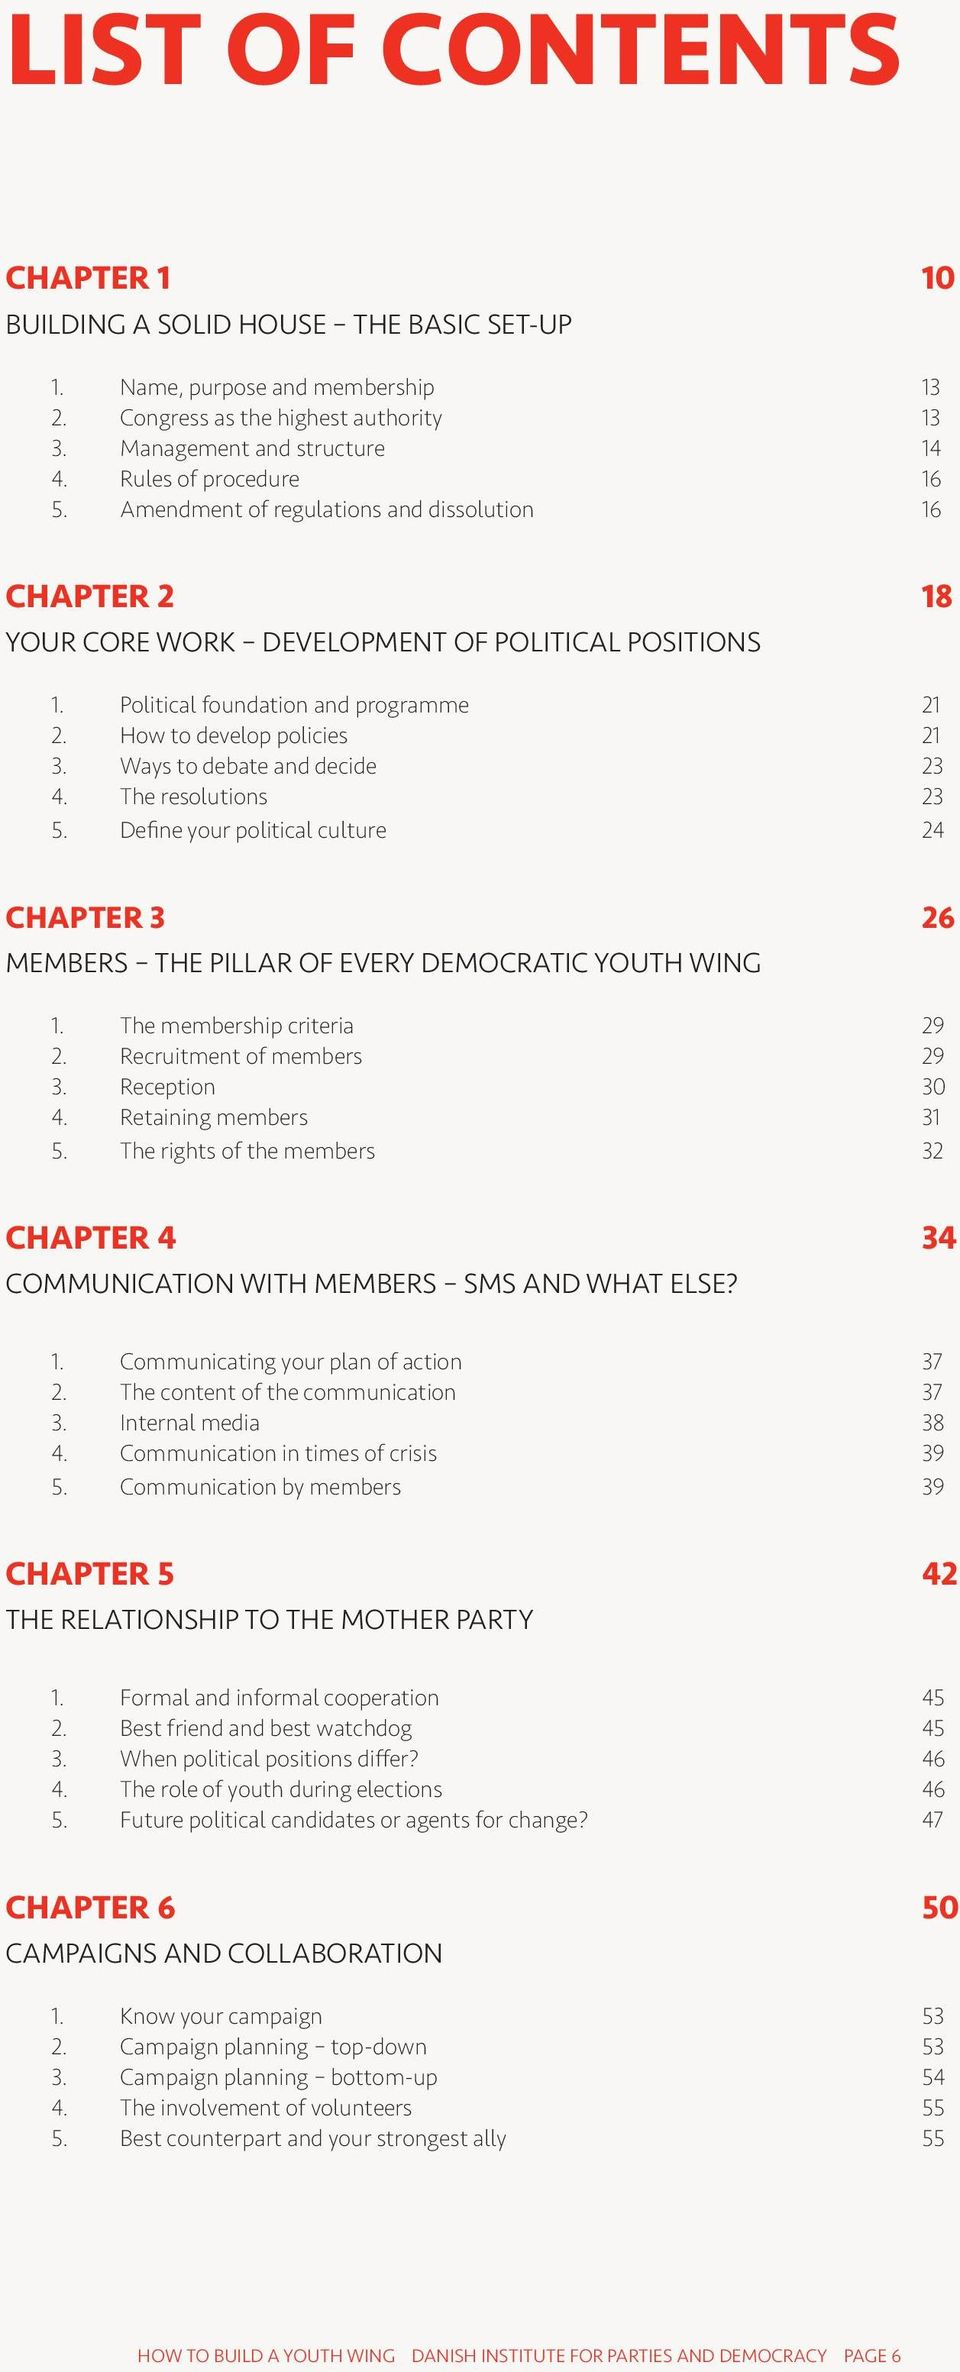 How to develop policies 21 3. Ways to debate and decide 23 4. The resolutions 23 5. Define your political culture 24 Chapter 3 26 MEMBERS THE PILLAR OF EVERY DEMOCRATIC YOUTH WING 1.